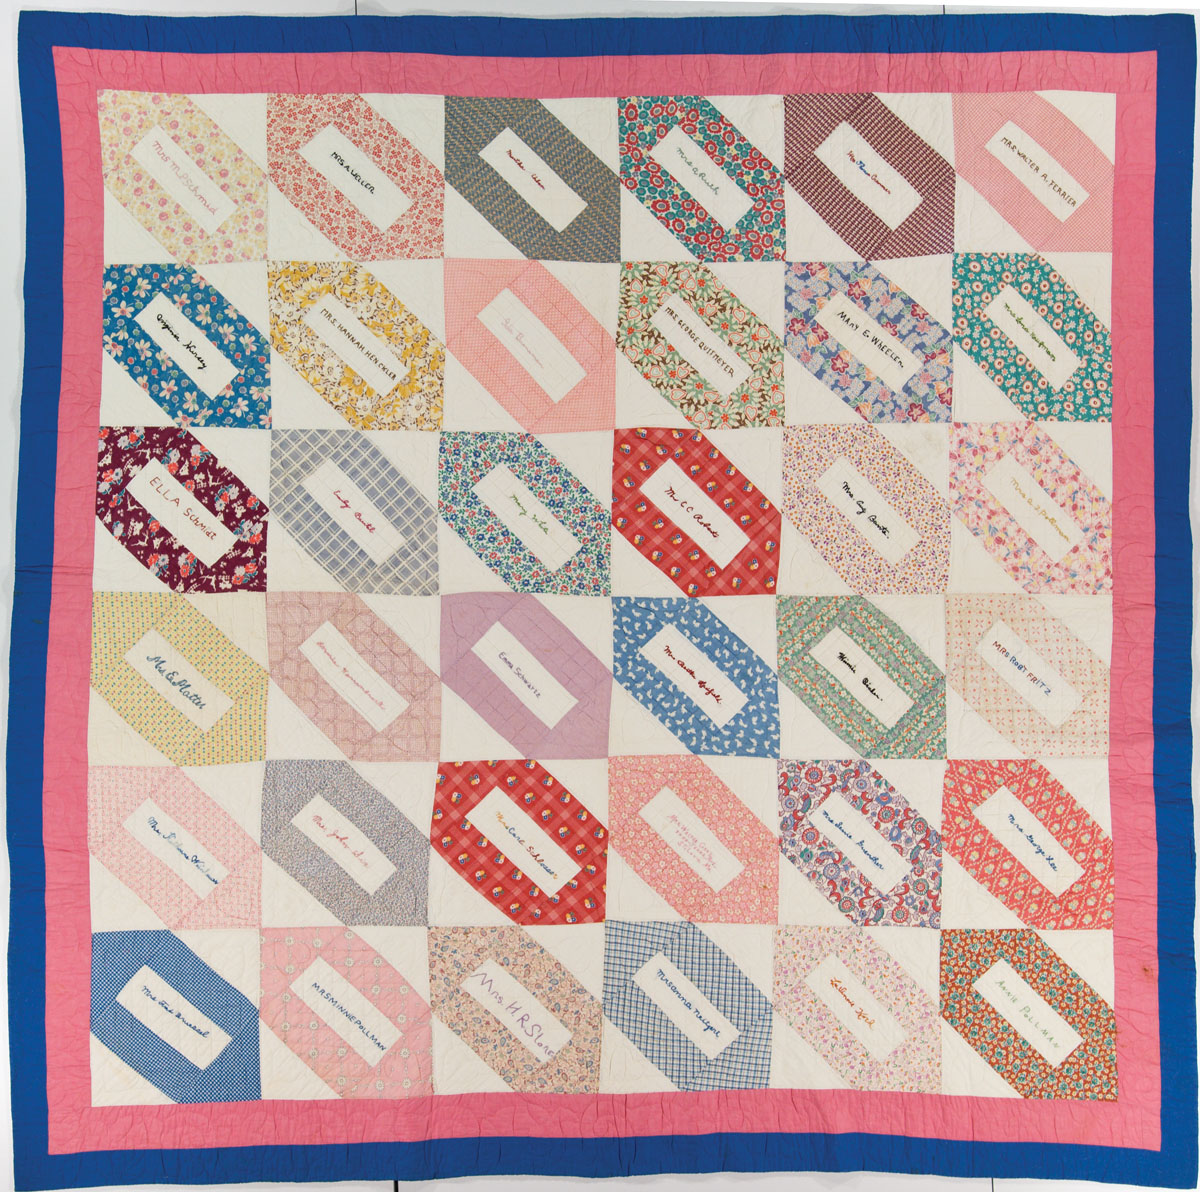 http://worldquilts.quiltstudy.org/americanstory/sites/default/files/1997_007_0738.jpg